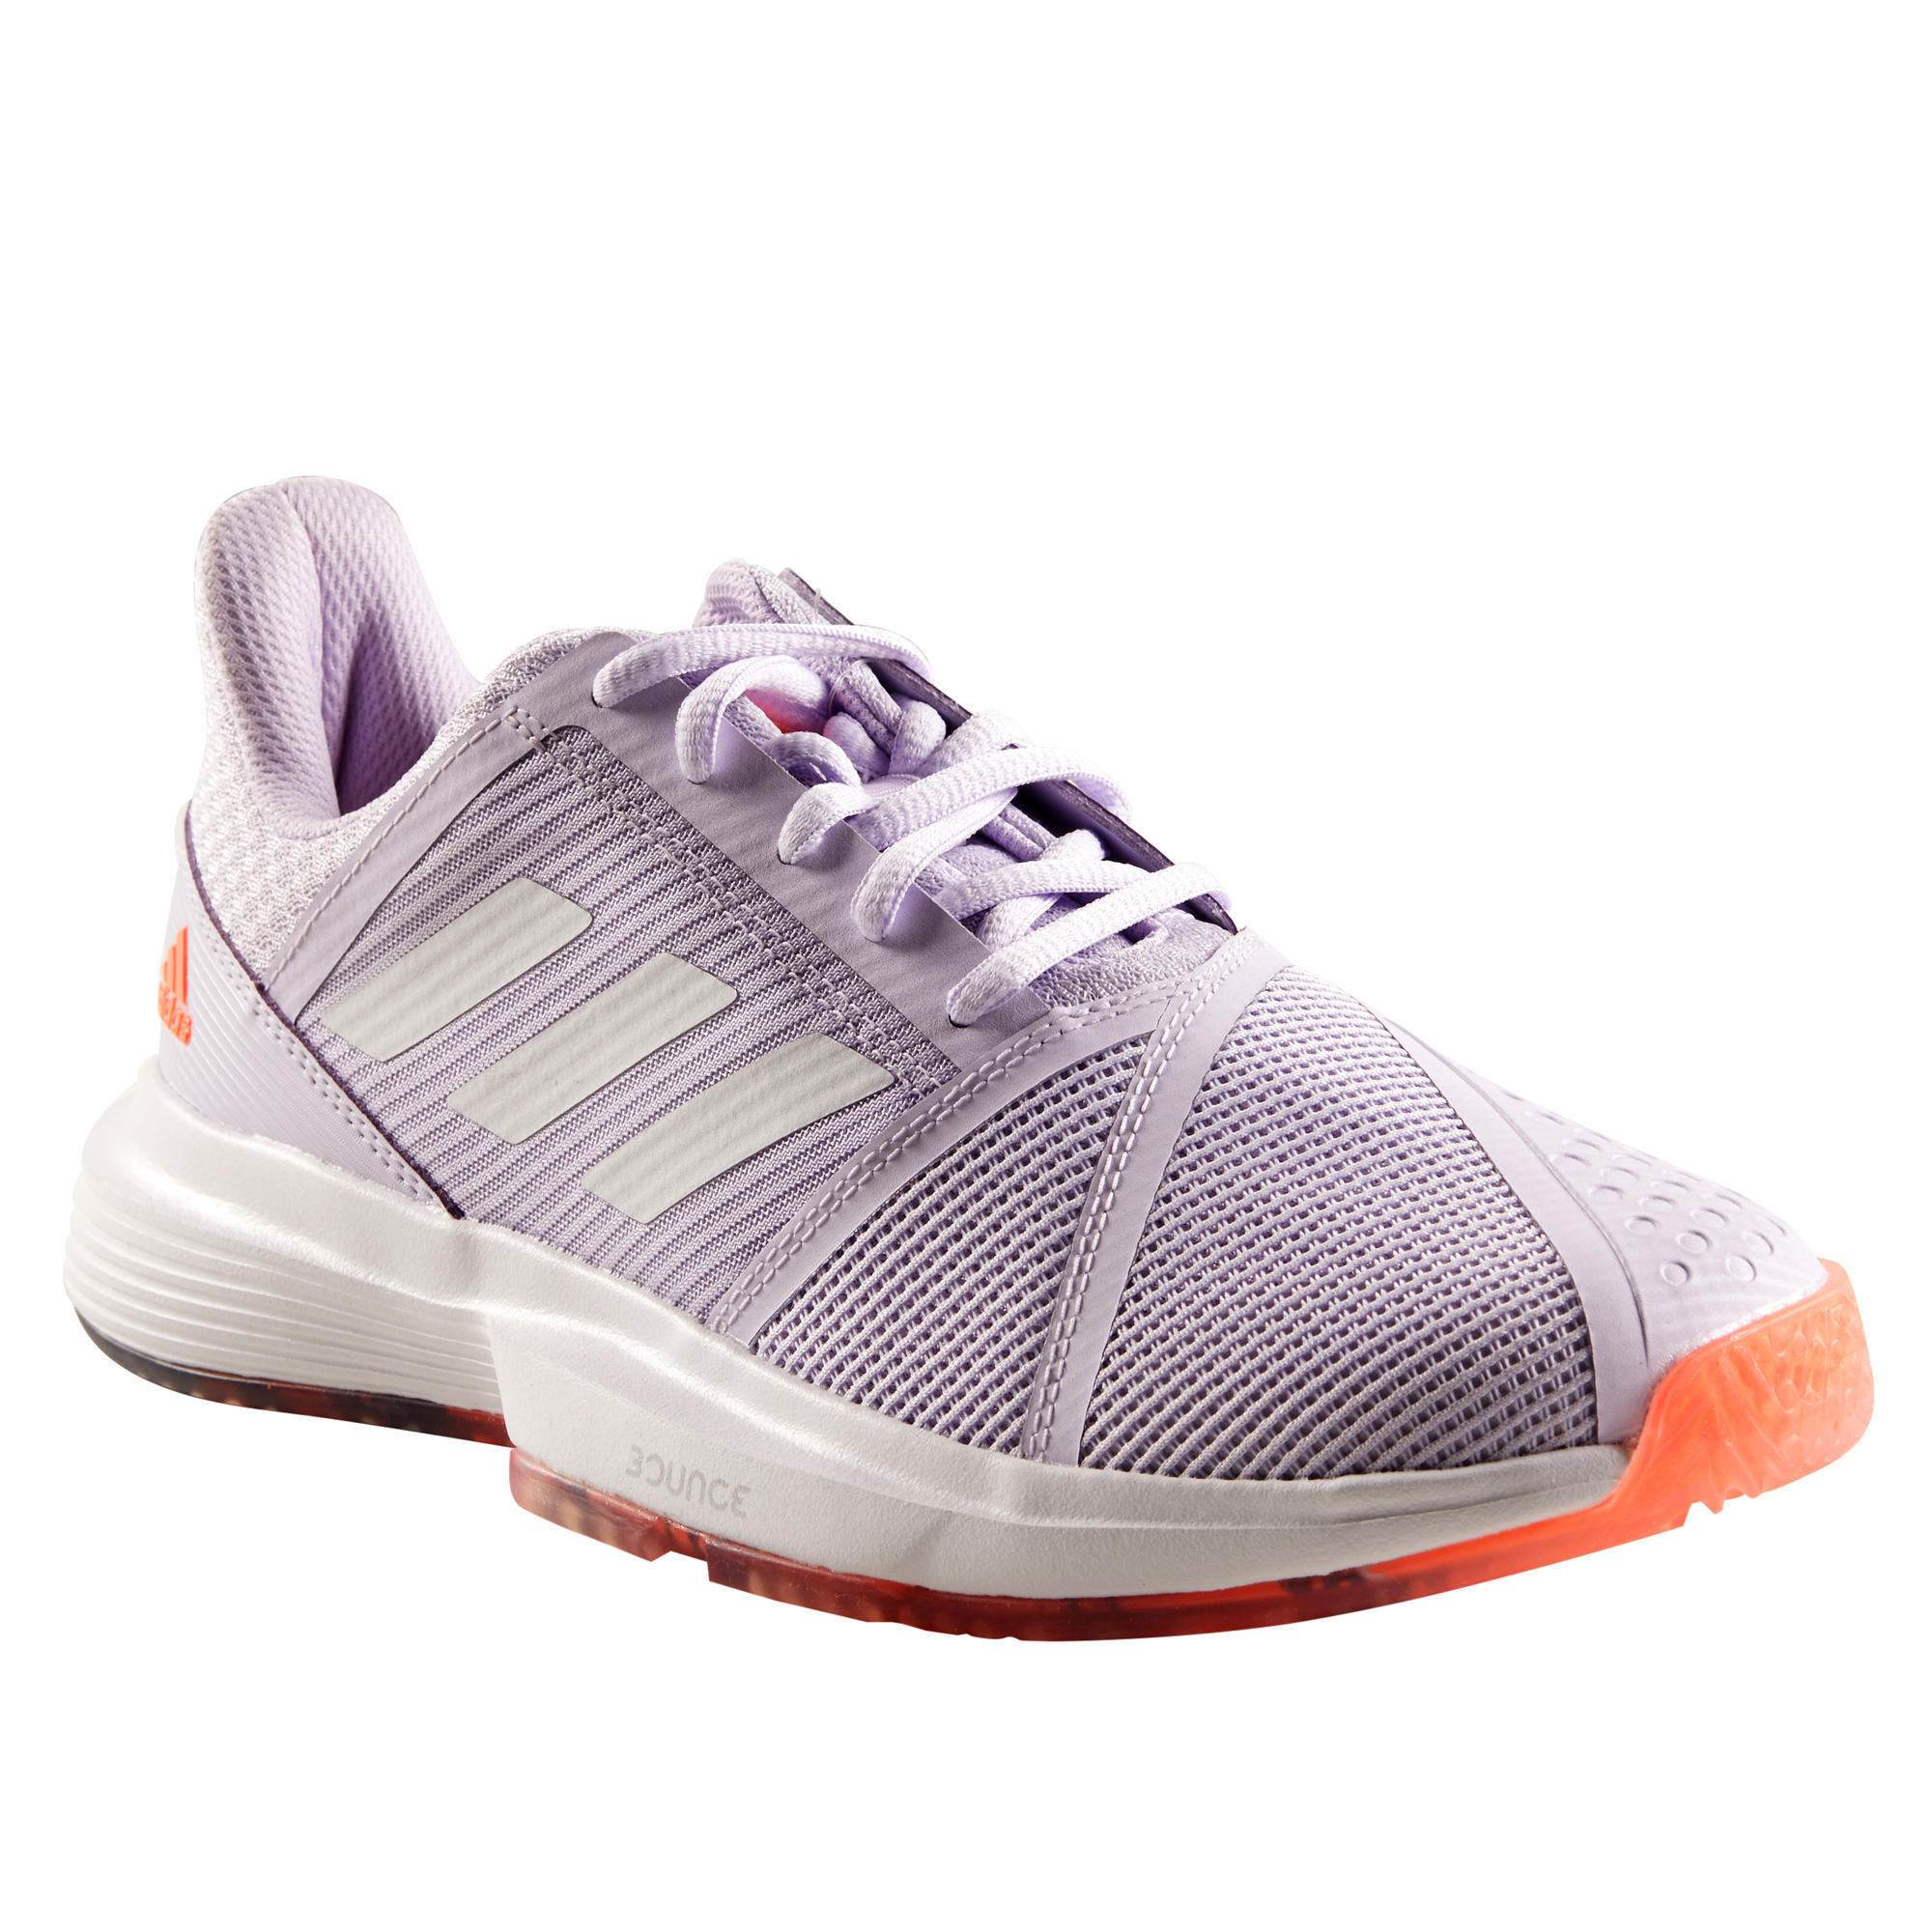 Revelar acuerdo Mirar  Women's Tennis Shoes CourtJam Bounce - Violet ADIDAS - Decathlon